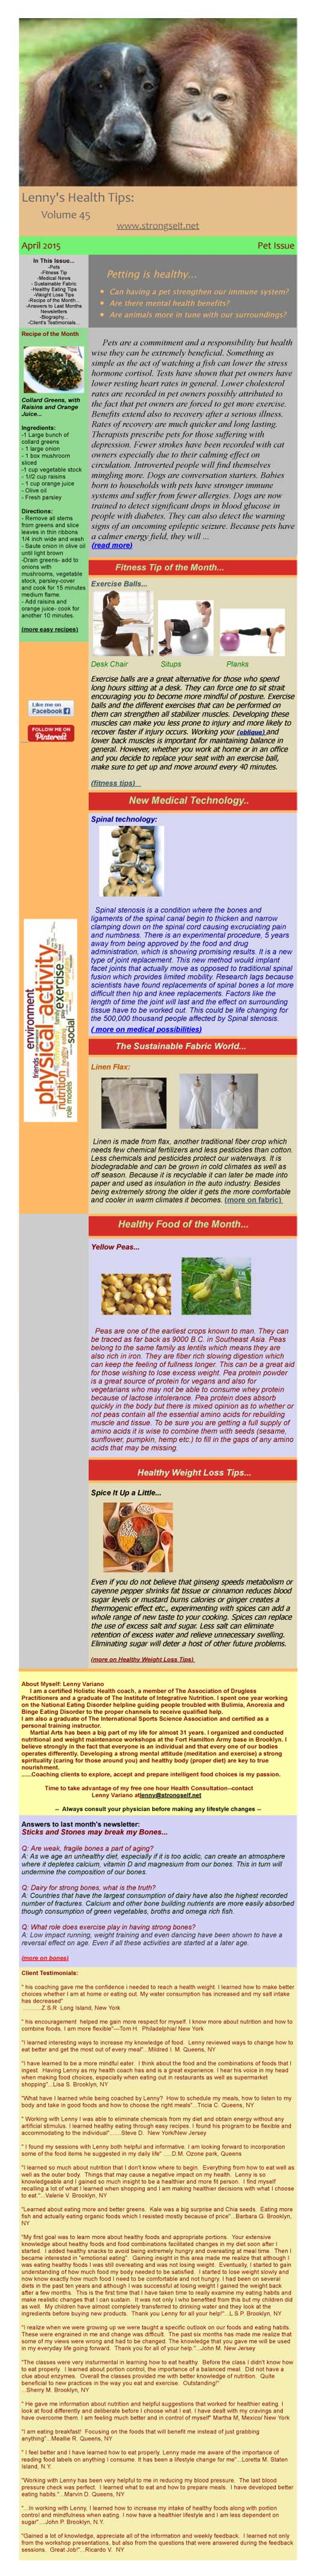 April 2015 Healthy Tips Newsletter from certified Holistic Health Counselor Lenny Variano